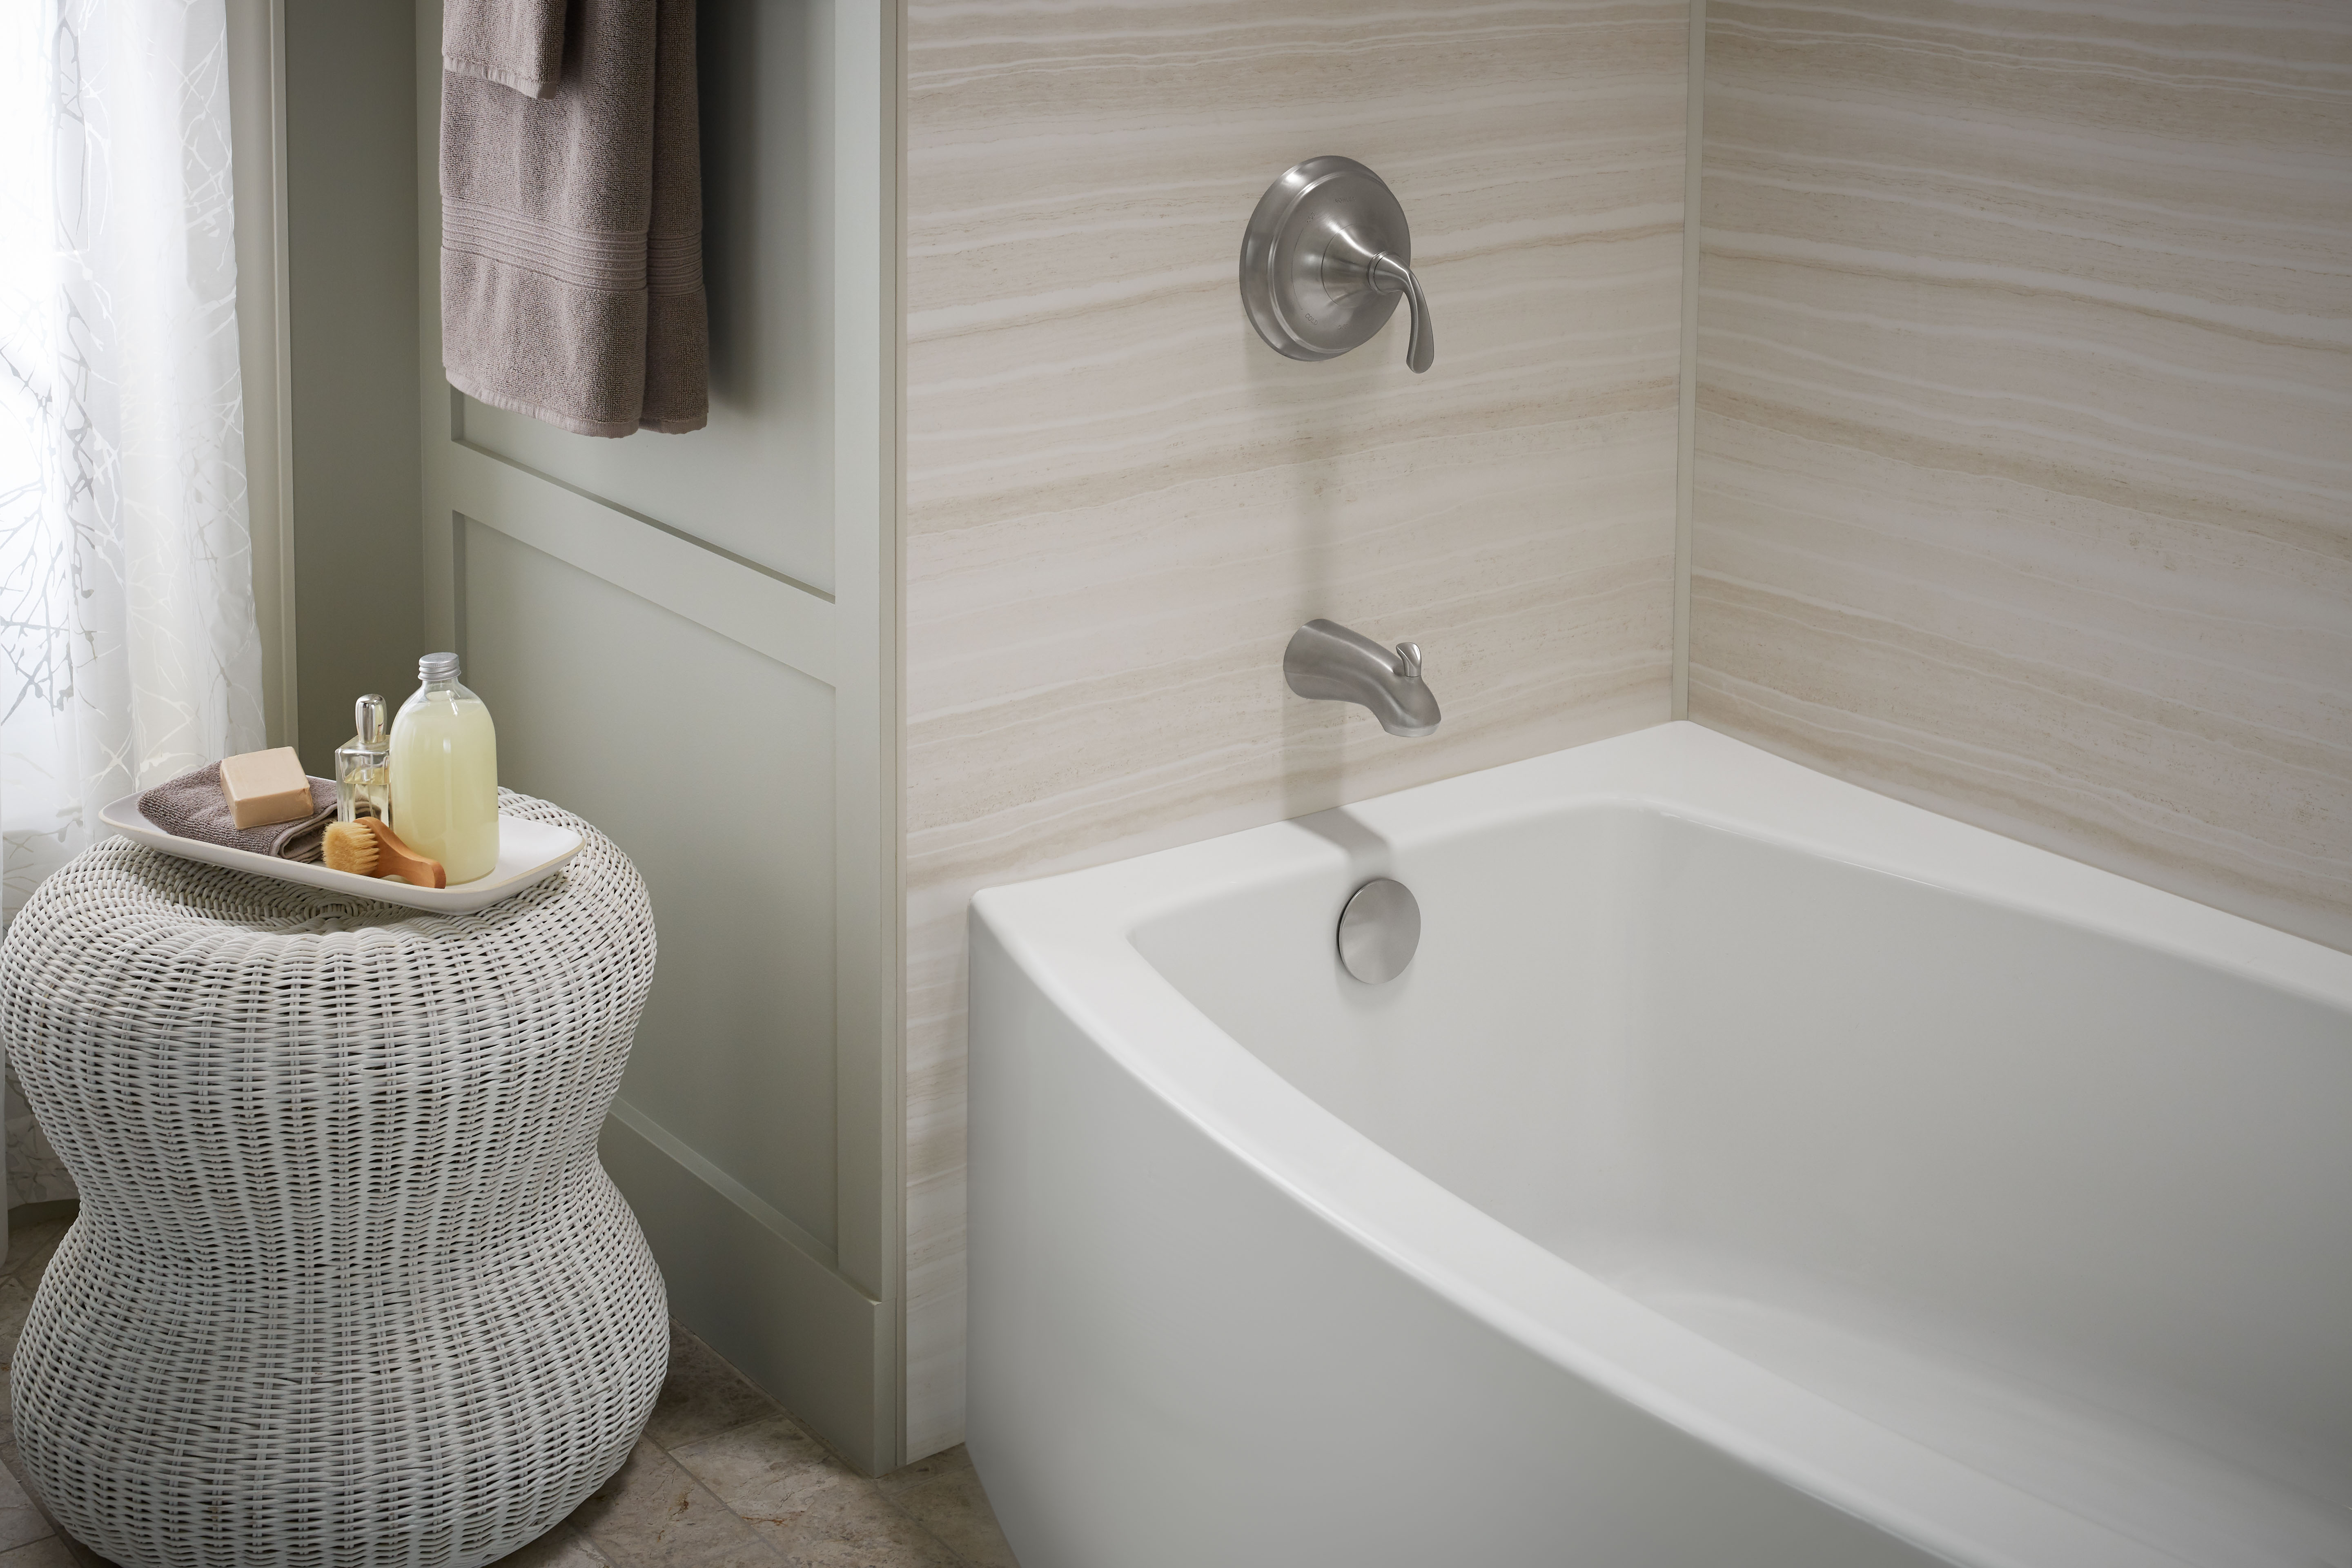 Bathtub Wall Surround, Replace Tile & Grout | Home Smart